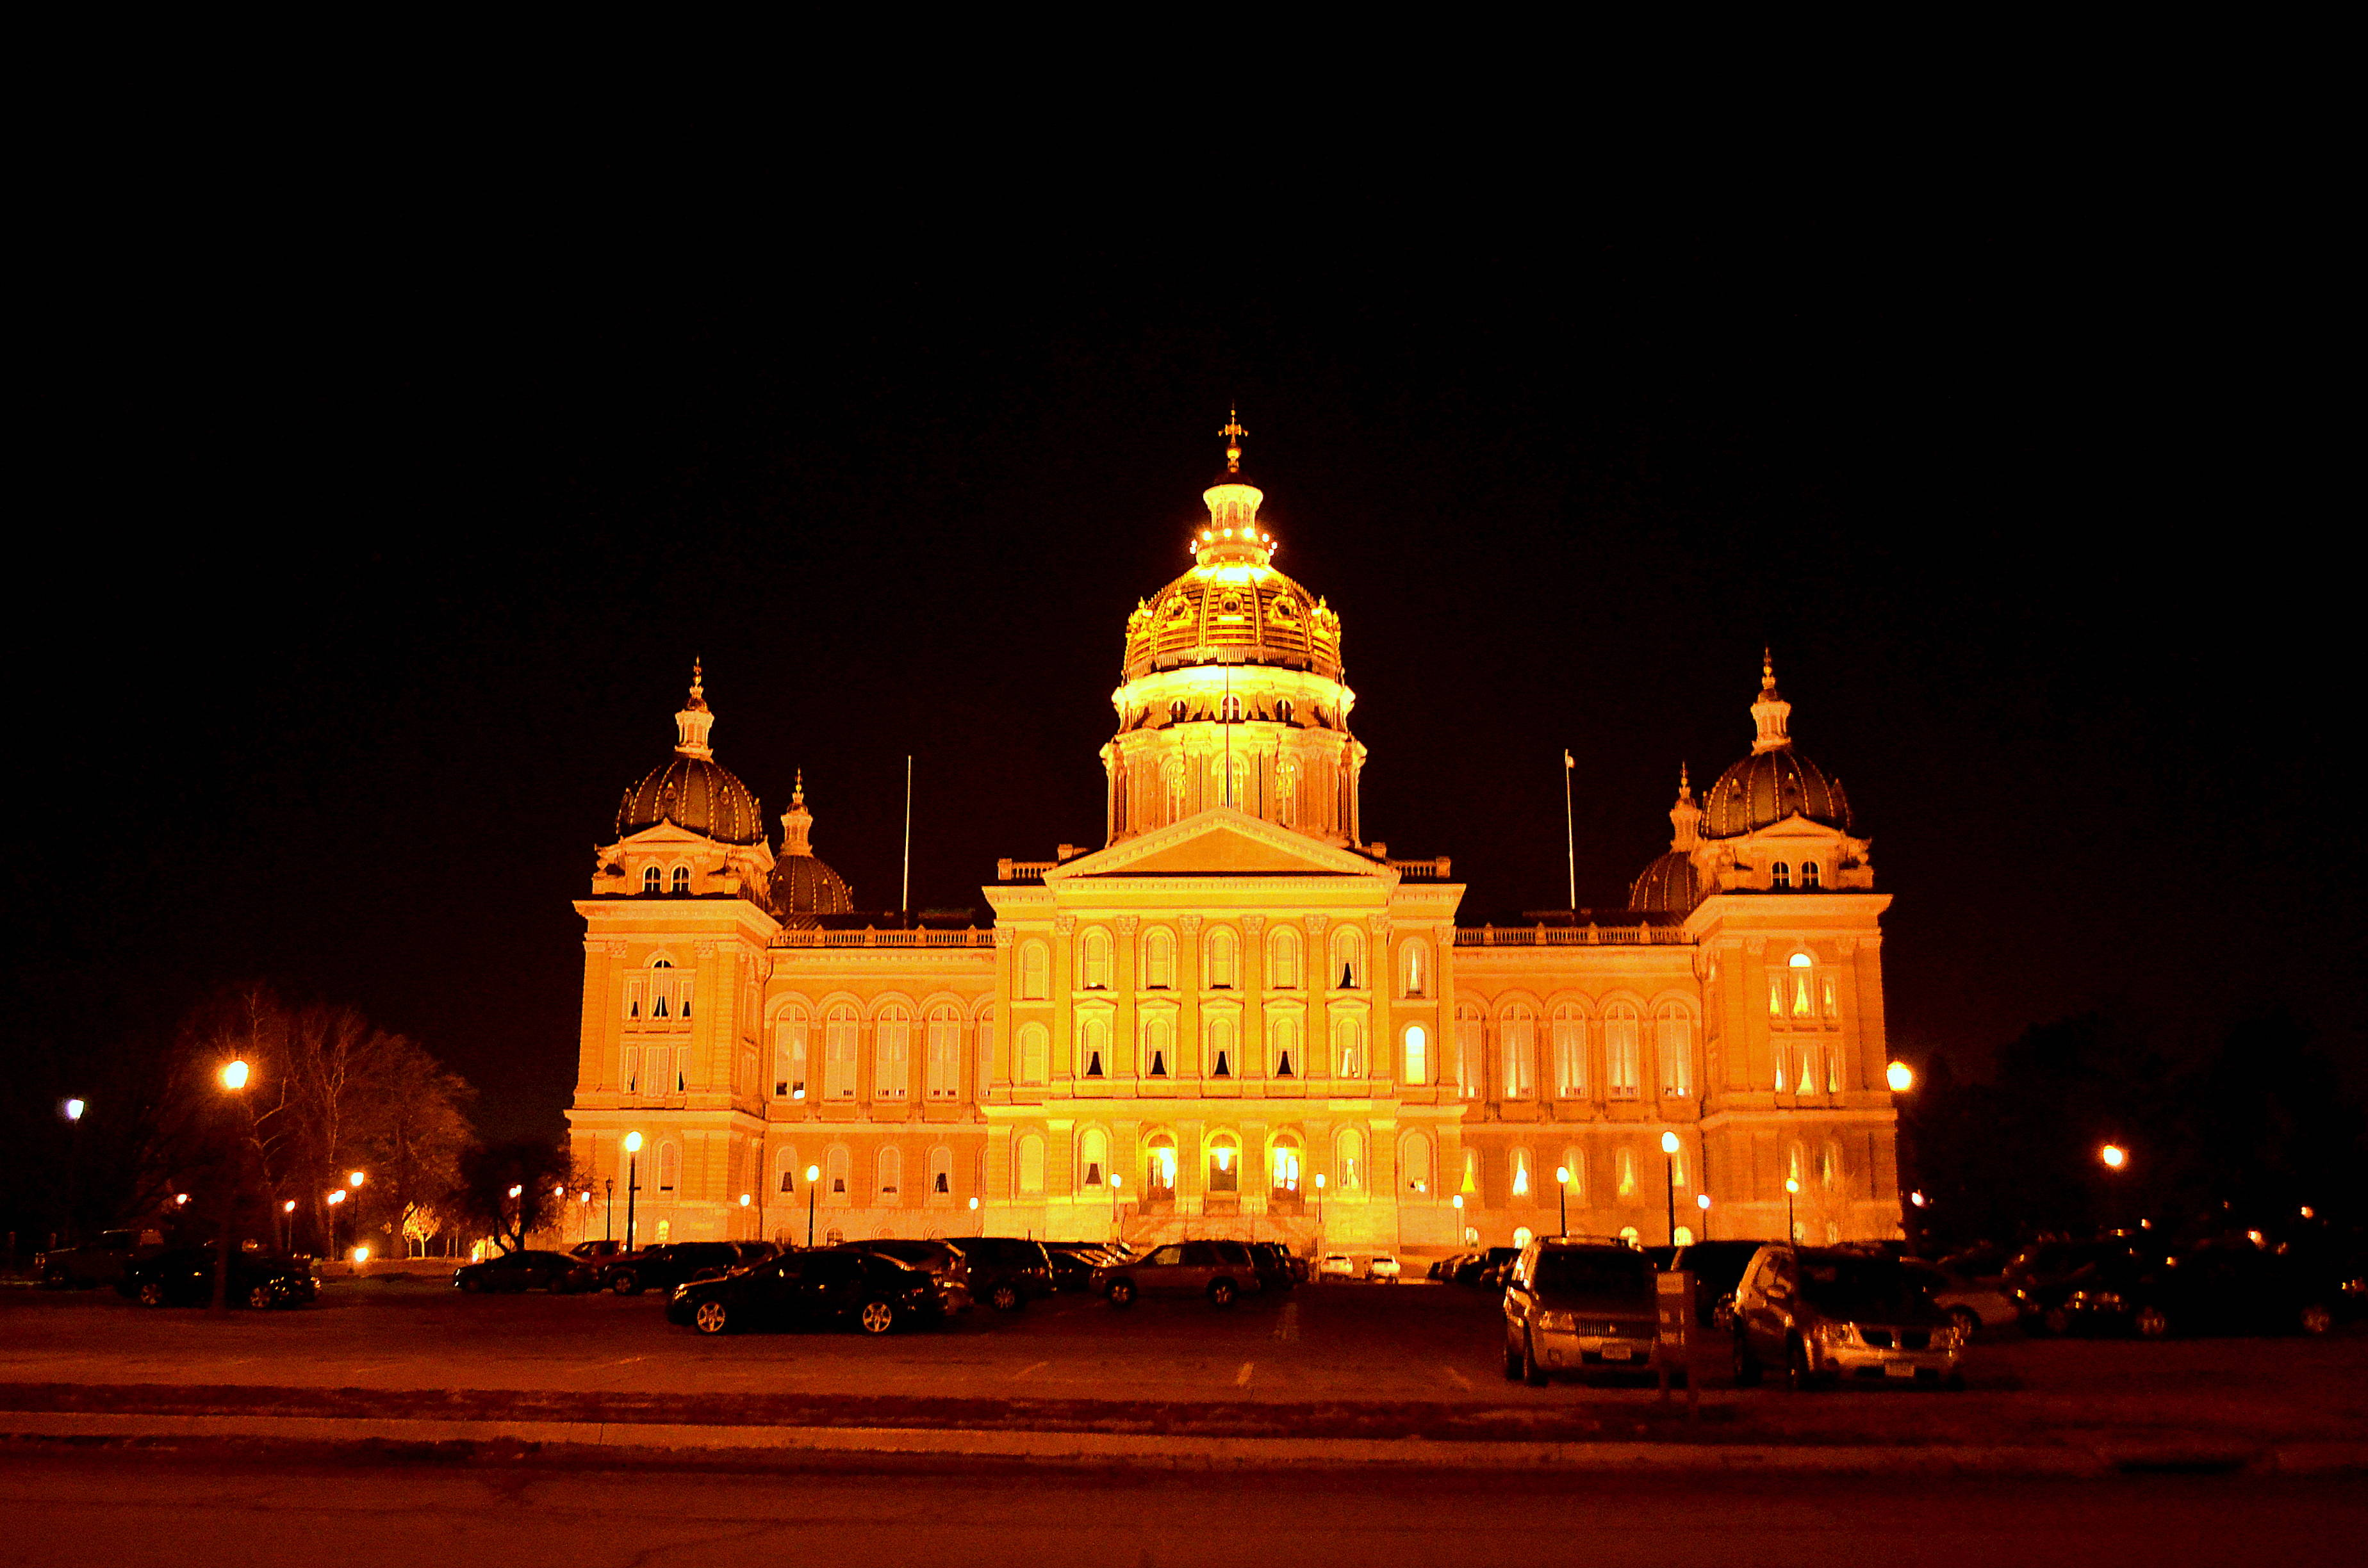 Des Moines Iowa Capitol at night